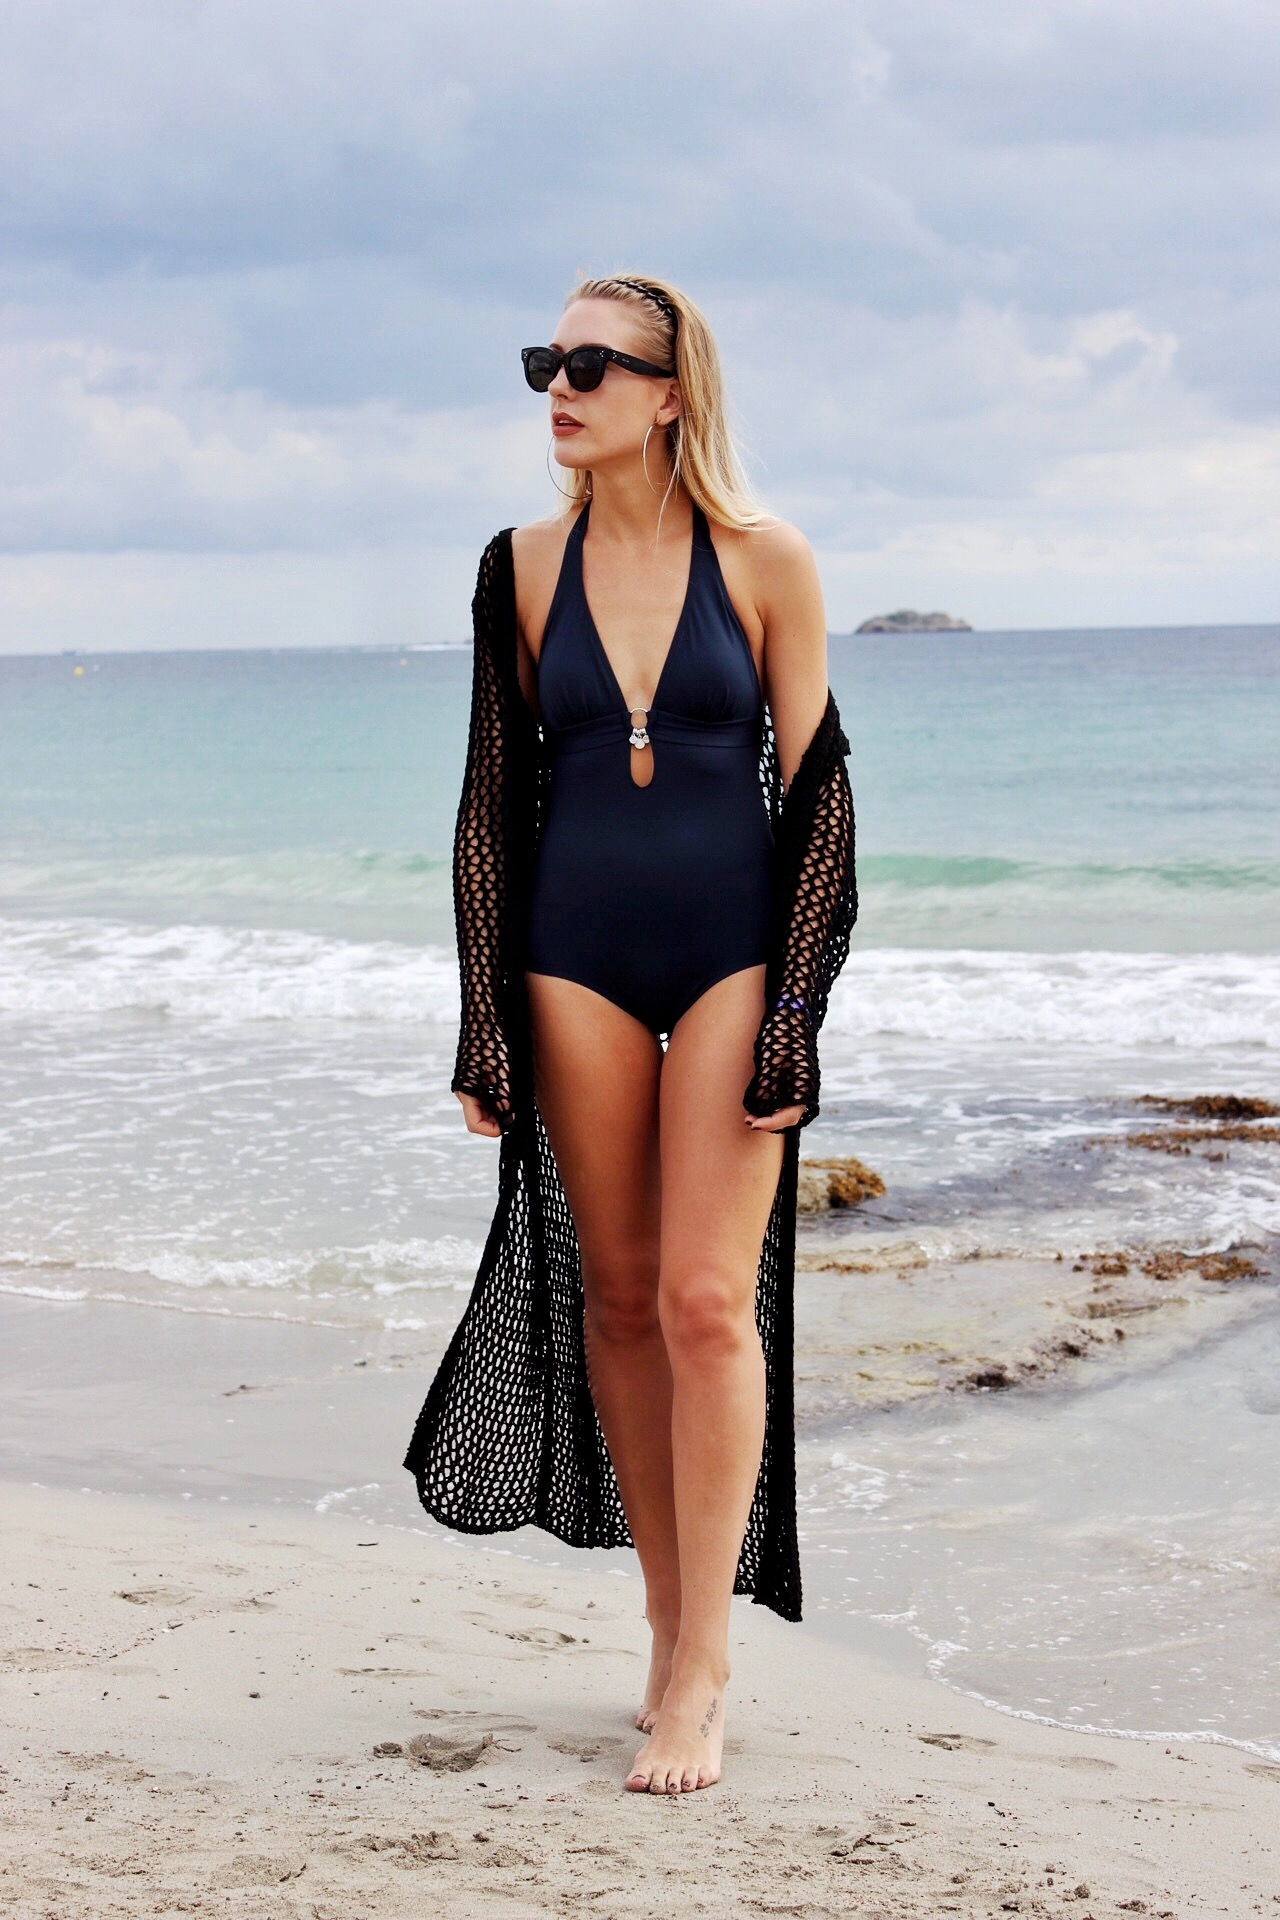 How to wear a swimsuit on holiday